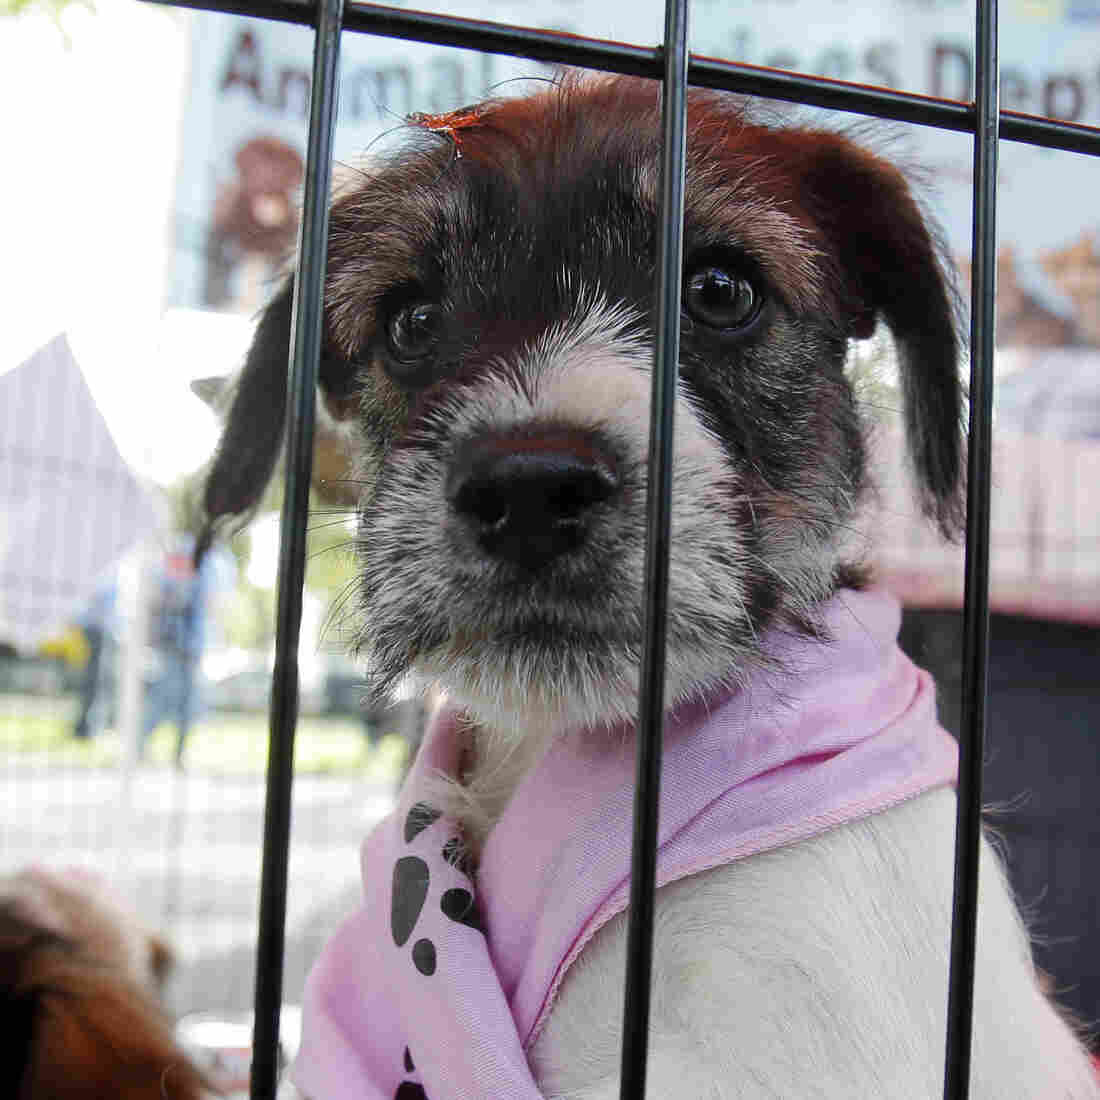 In More Cities, That Doggie In The Window Is Not For Sale